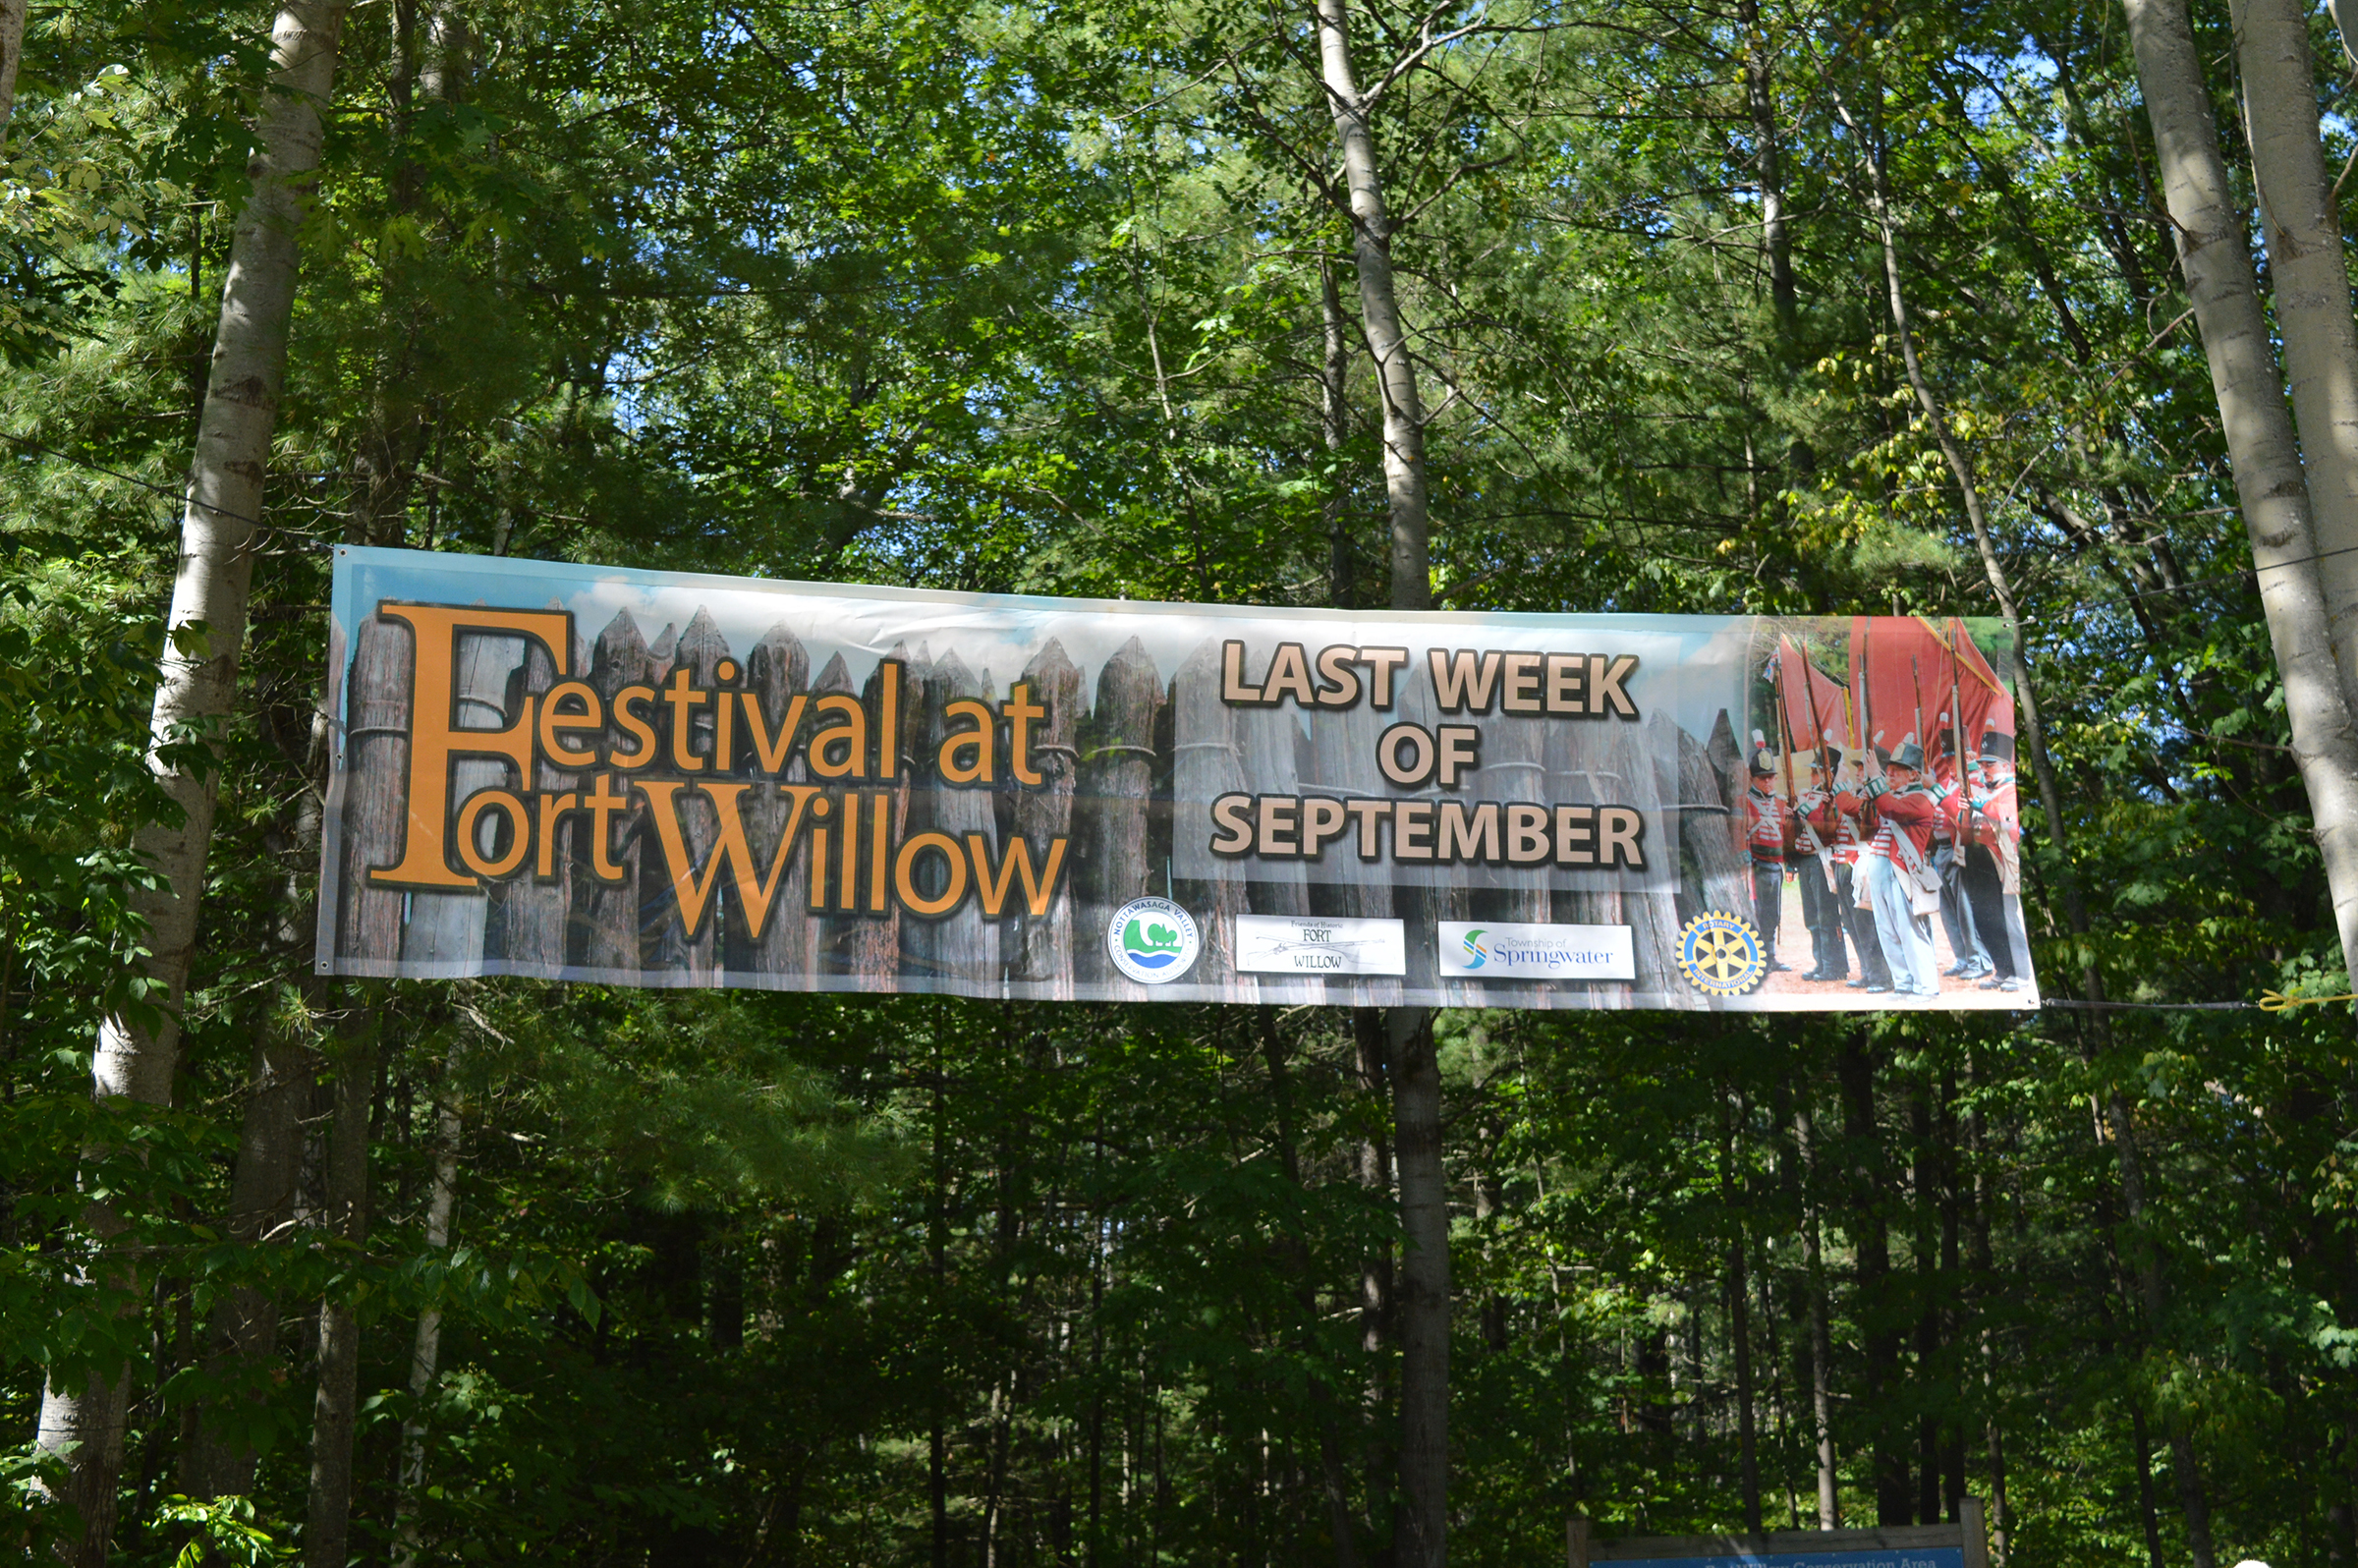 Banner for Festival at Fort Willow.jpg